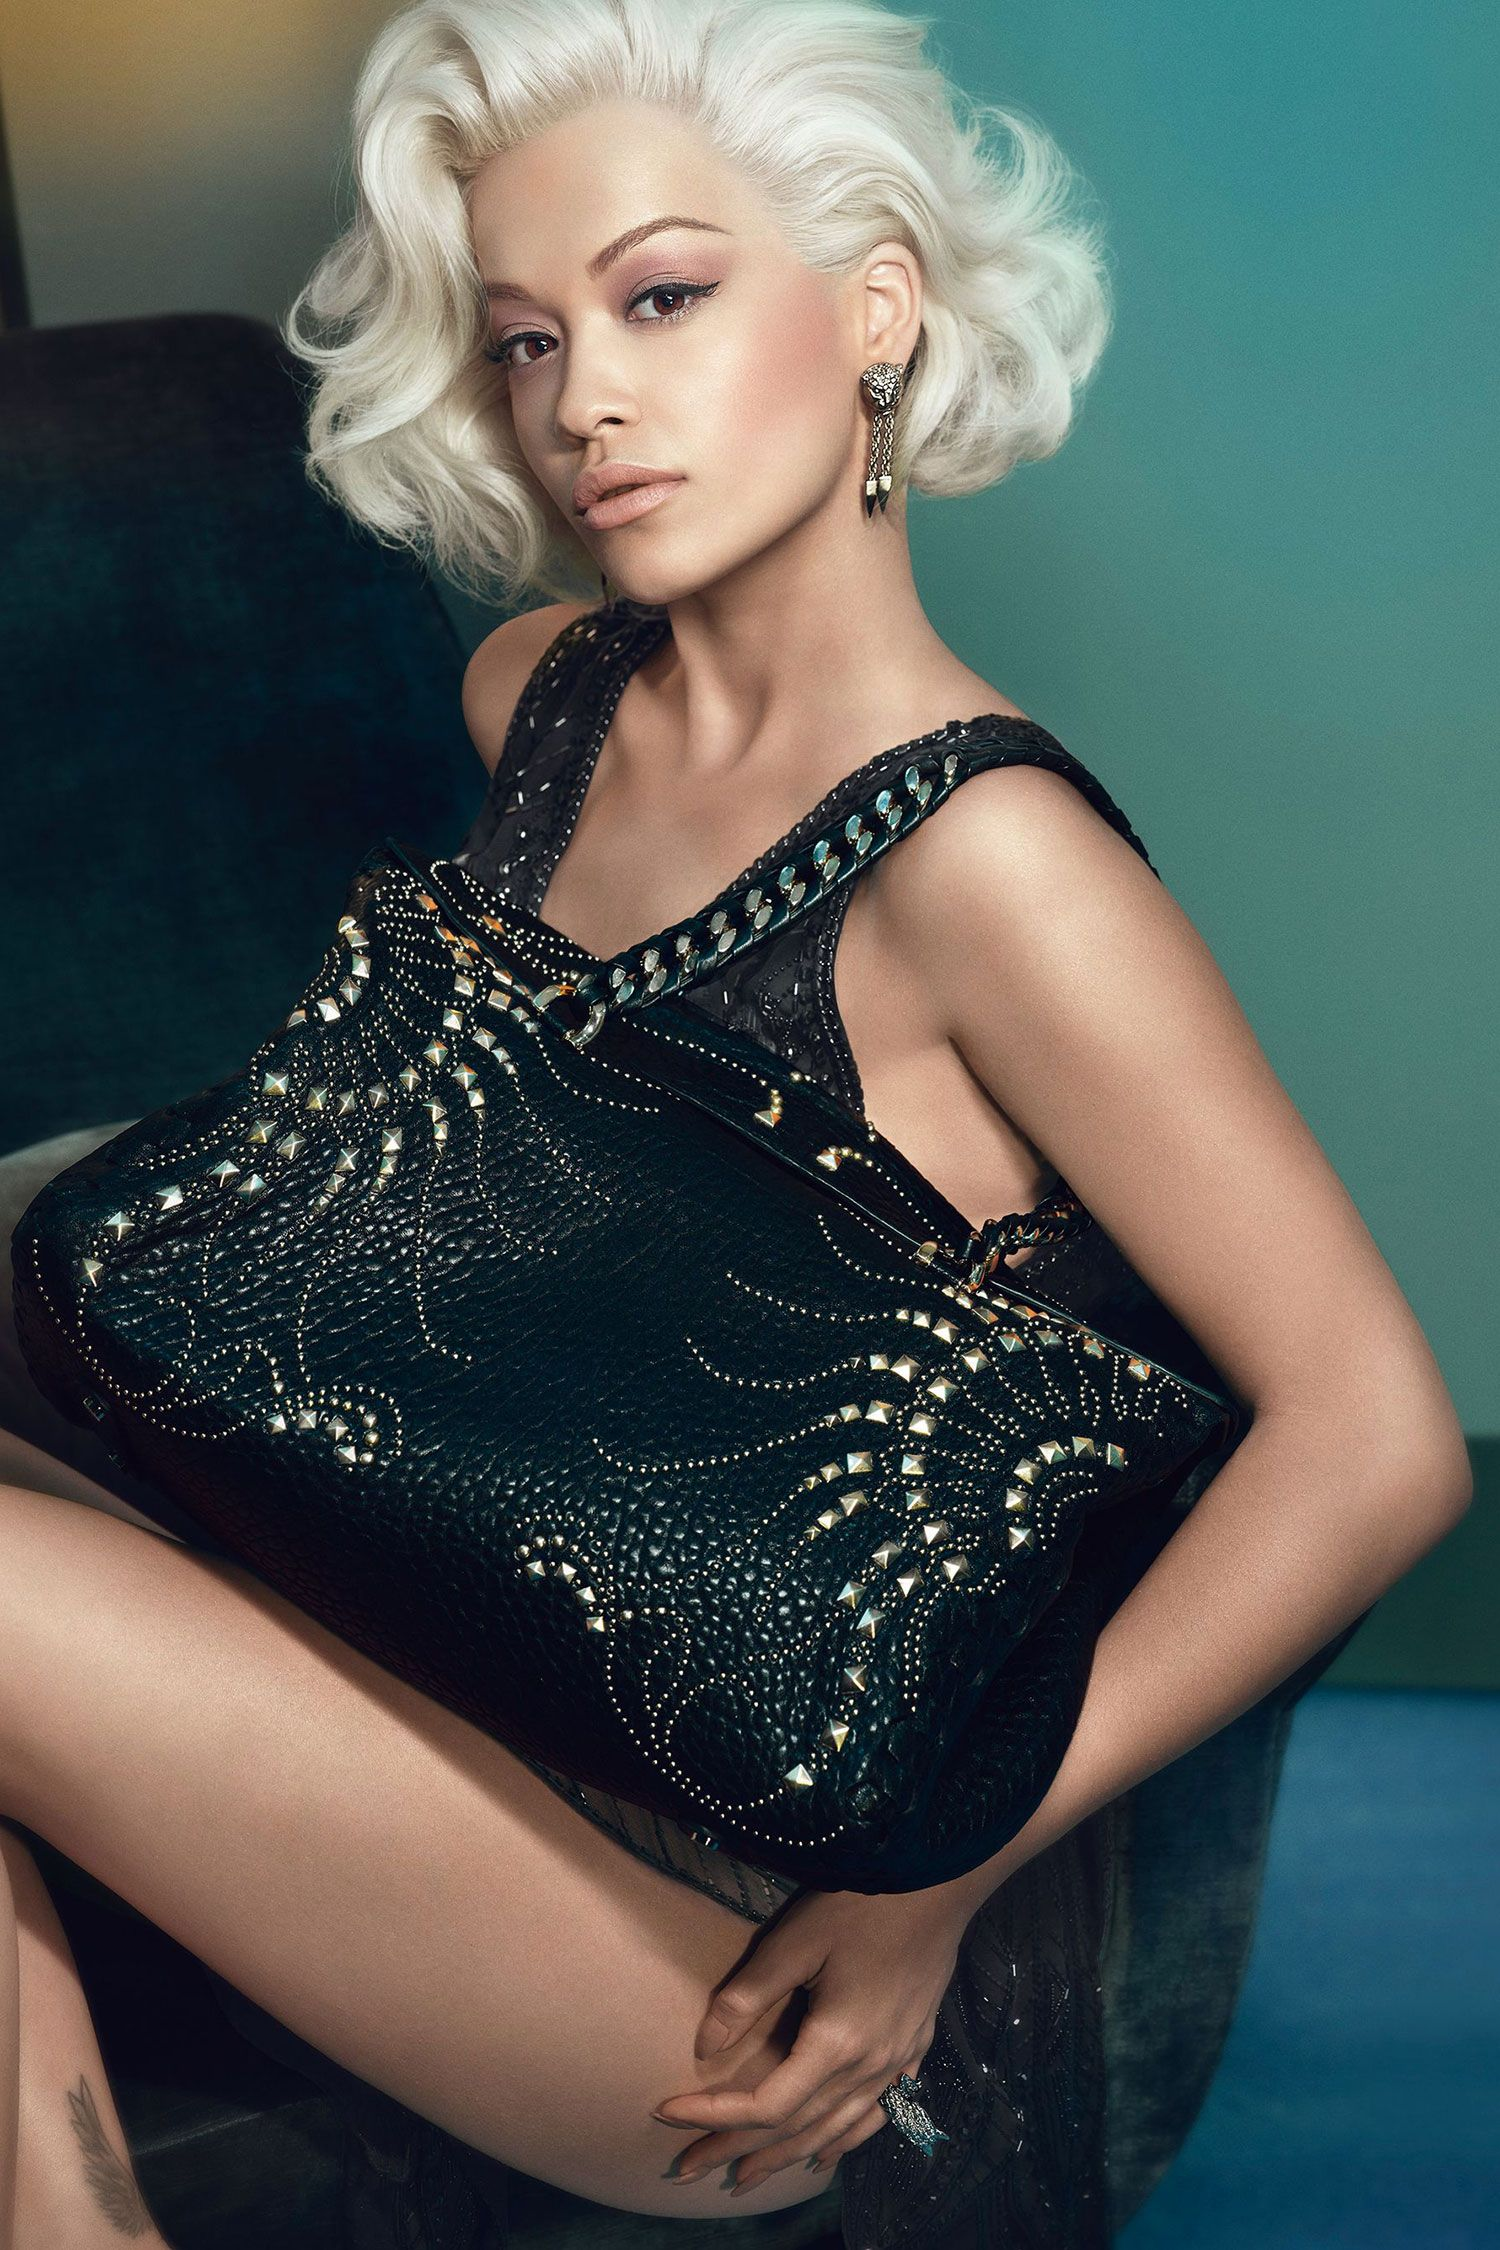 Rita Ora Is The New Face of Roberto Cavalli